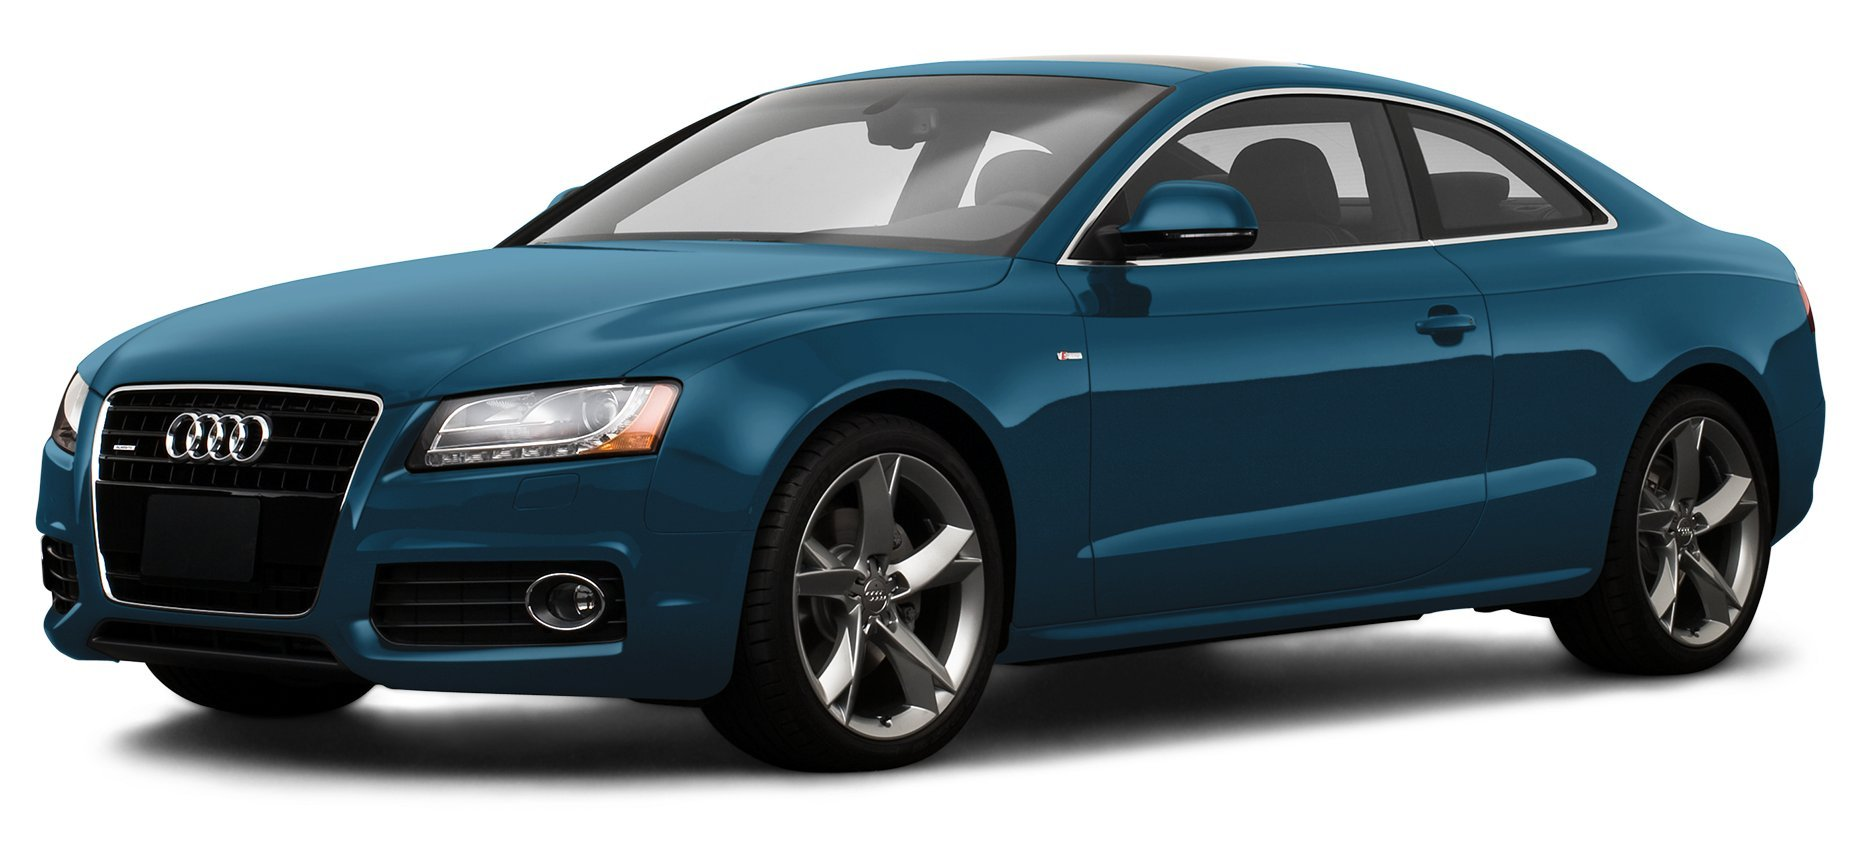 Audi audi a4 coup : Amazon.com: 2009 Audi A4 Quattro Reviews, Images, and Specs: Vehicles